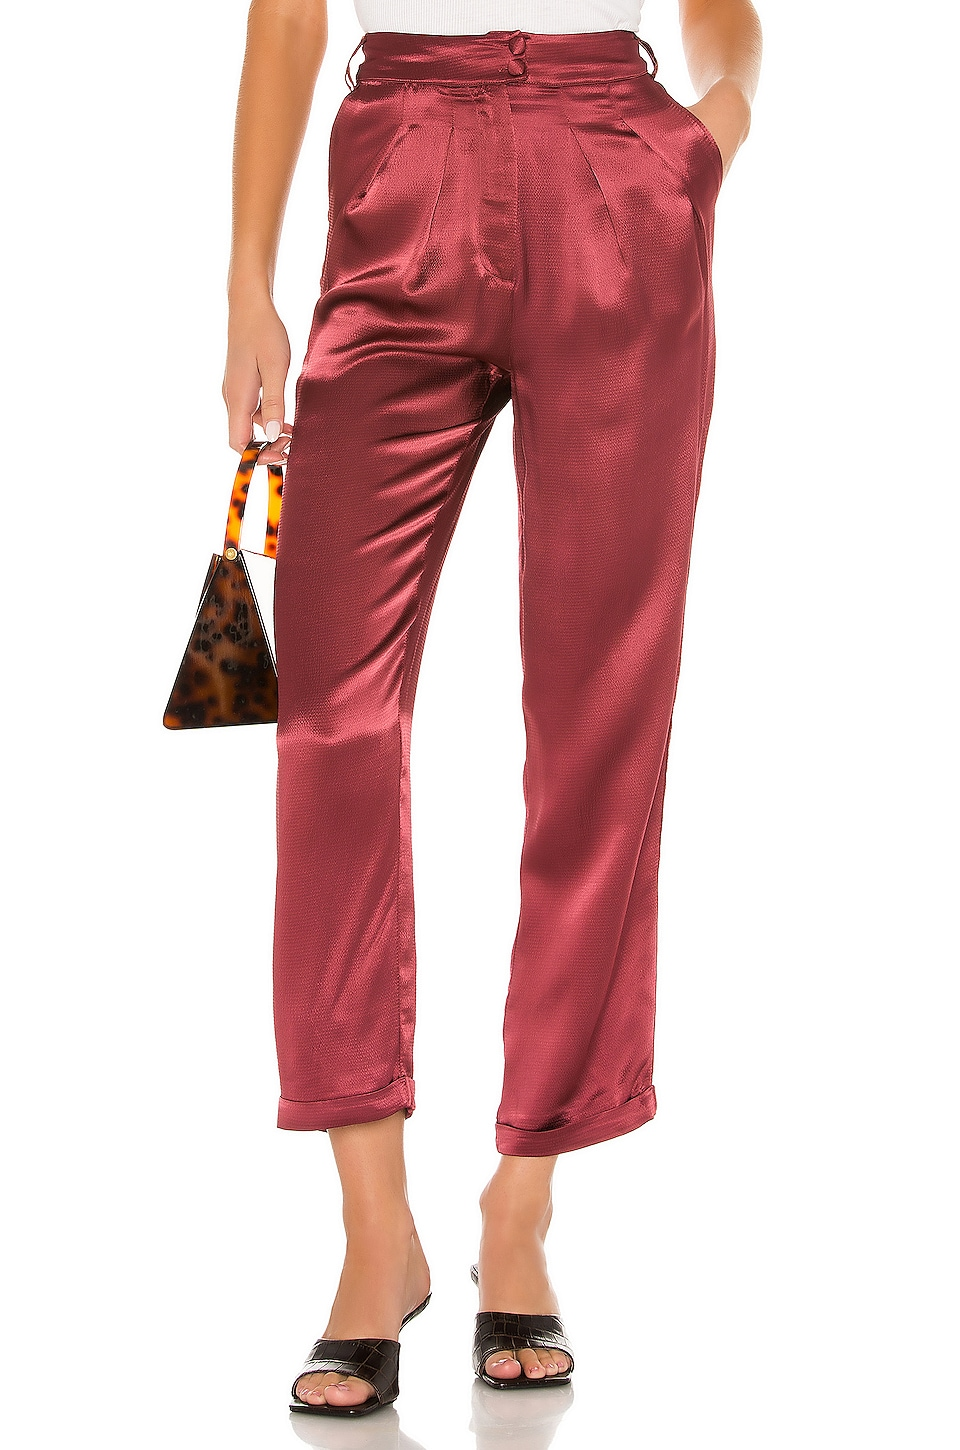 House of Harlow 1960 x REVOLVE Cisco Pant in Currant